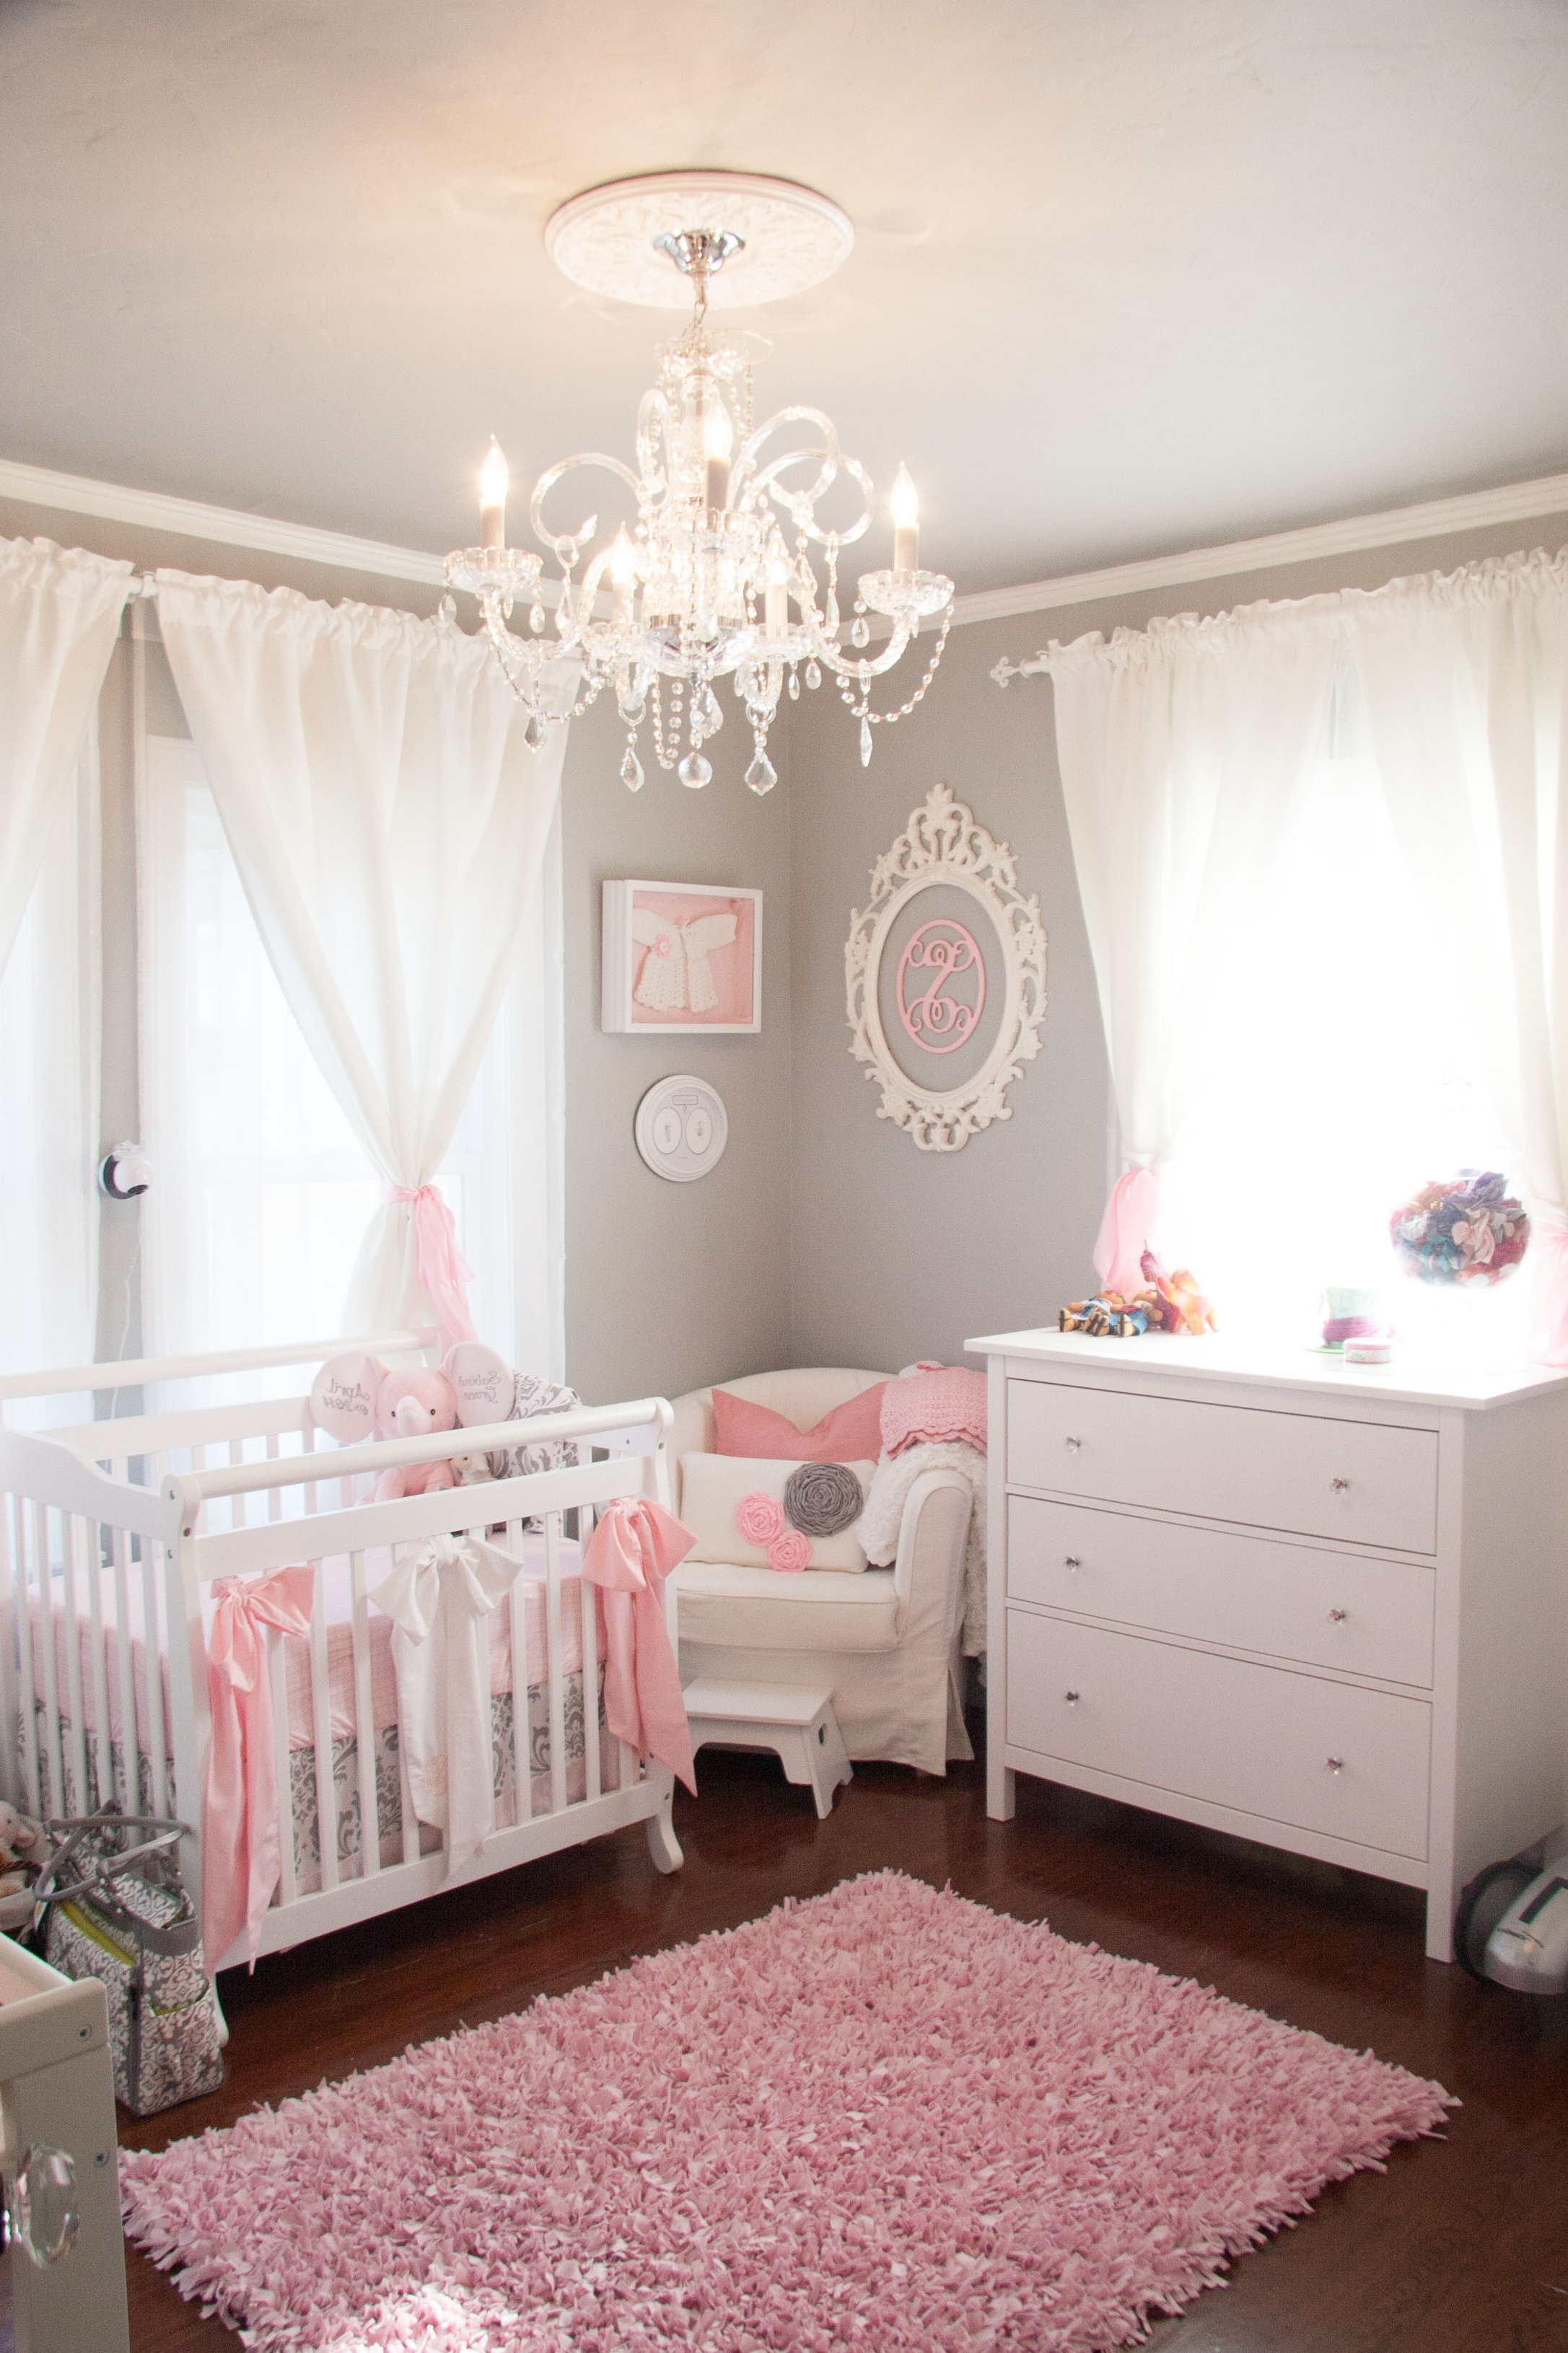 Best And Newest Chandeliers : Small Chandeliers For Bedroom Awesome Chandelier Intended For Mini Chandeliers For Nursery (View 3 of 20)